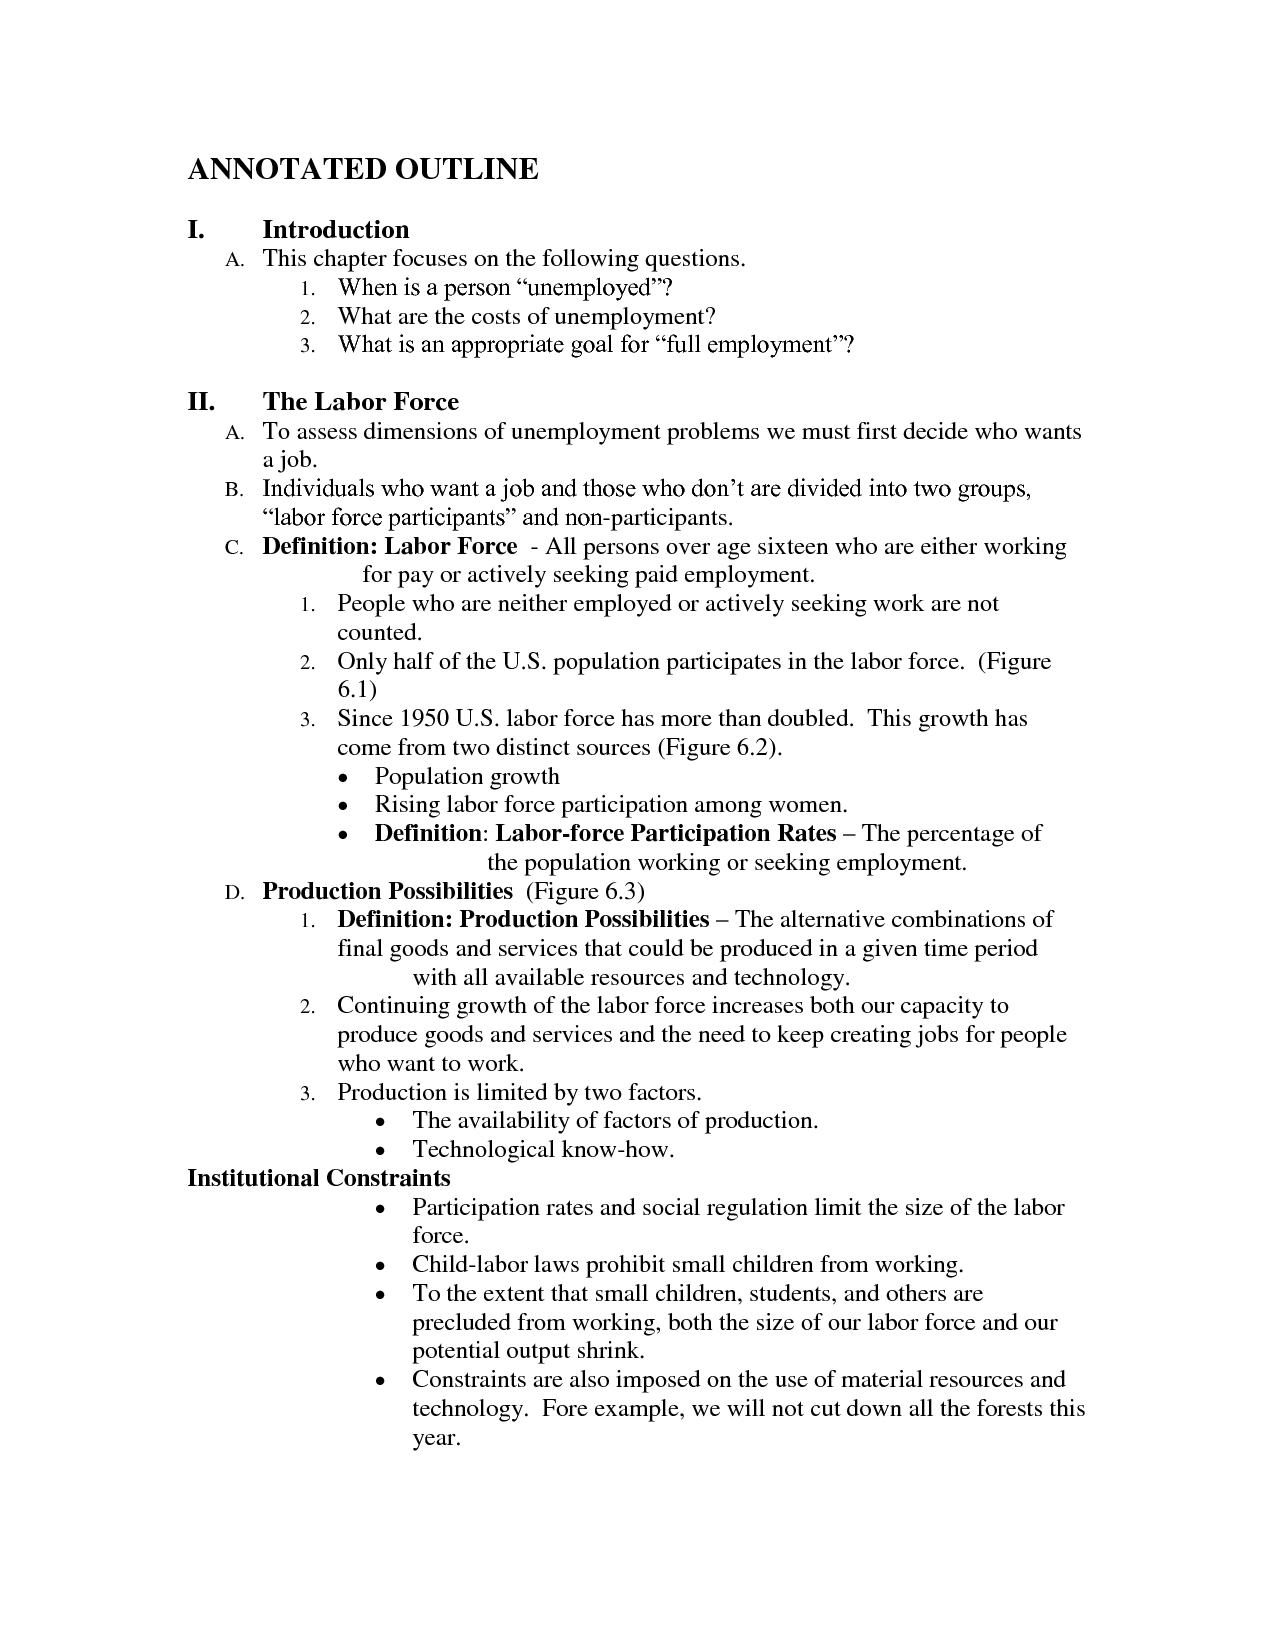 007 Research Paper Apa Introduction Outline Annotated Format 82075 Striking For An Of Full